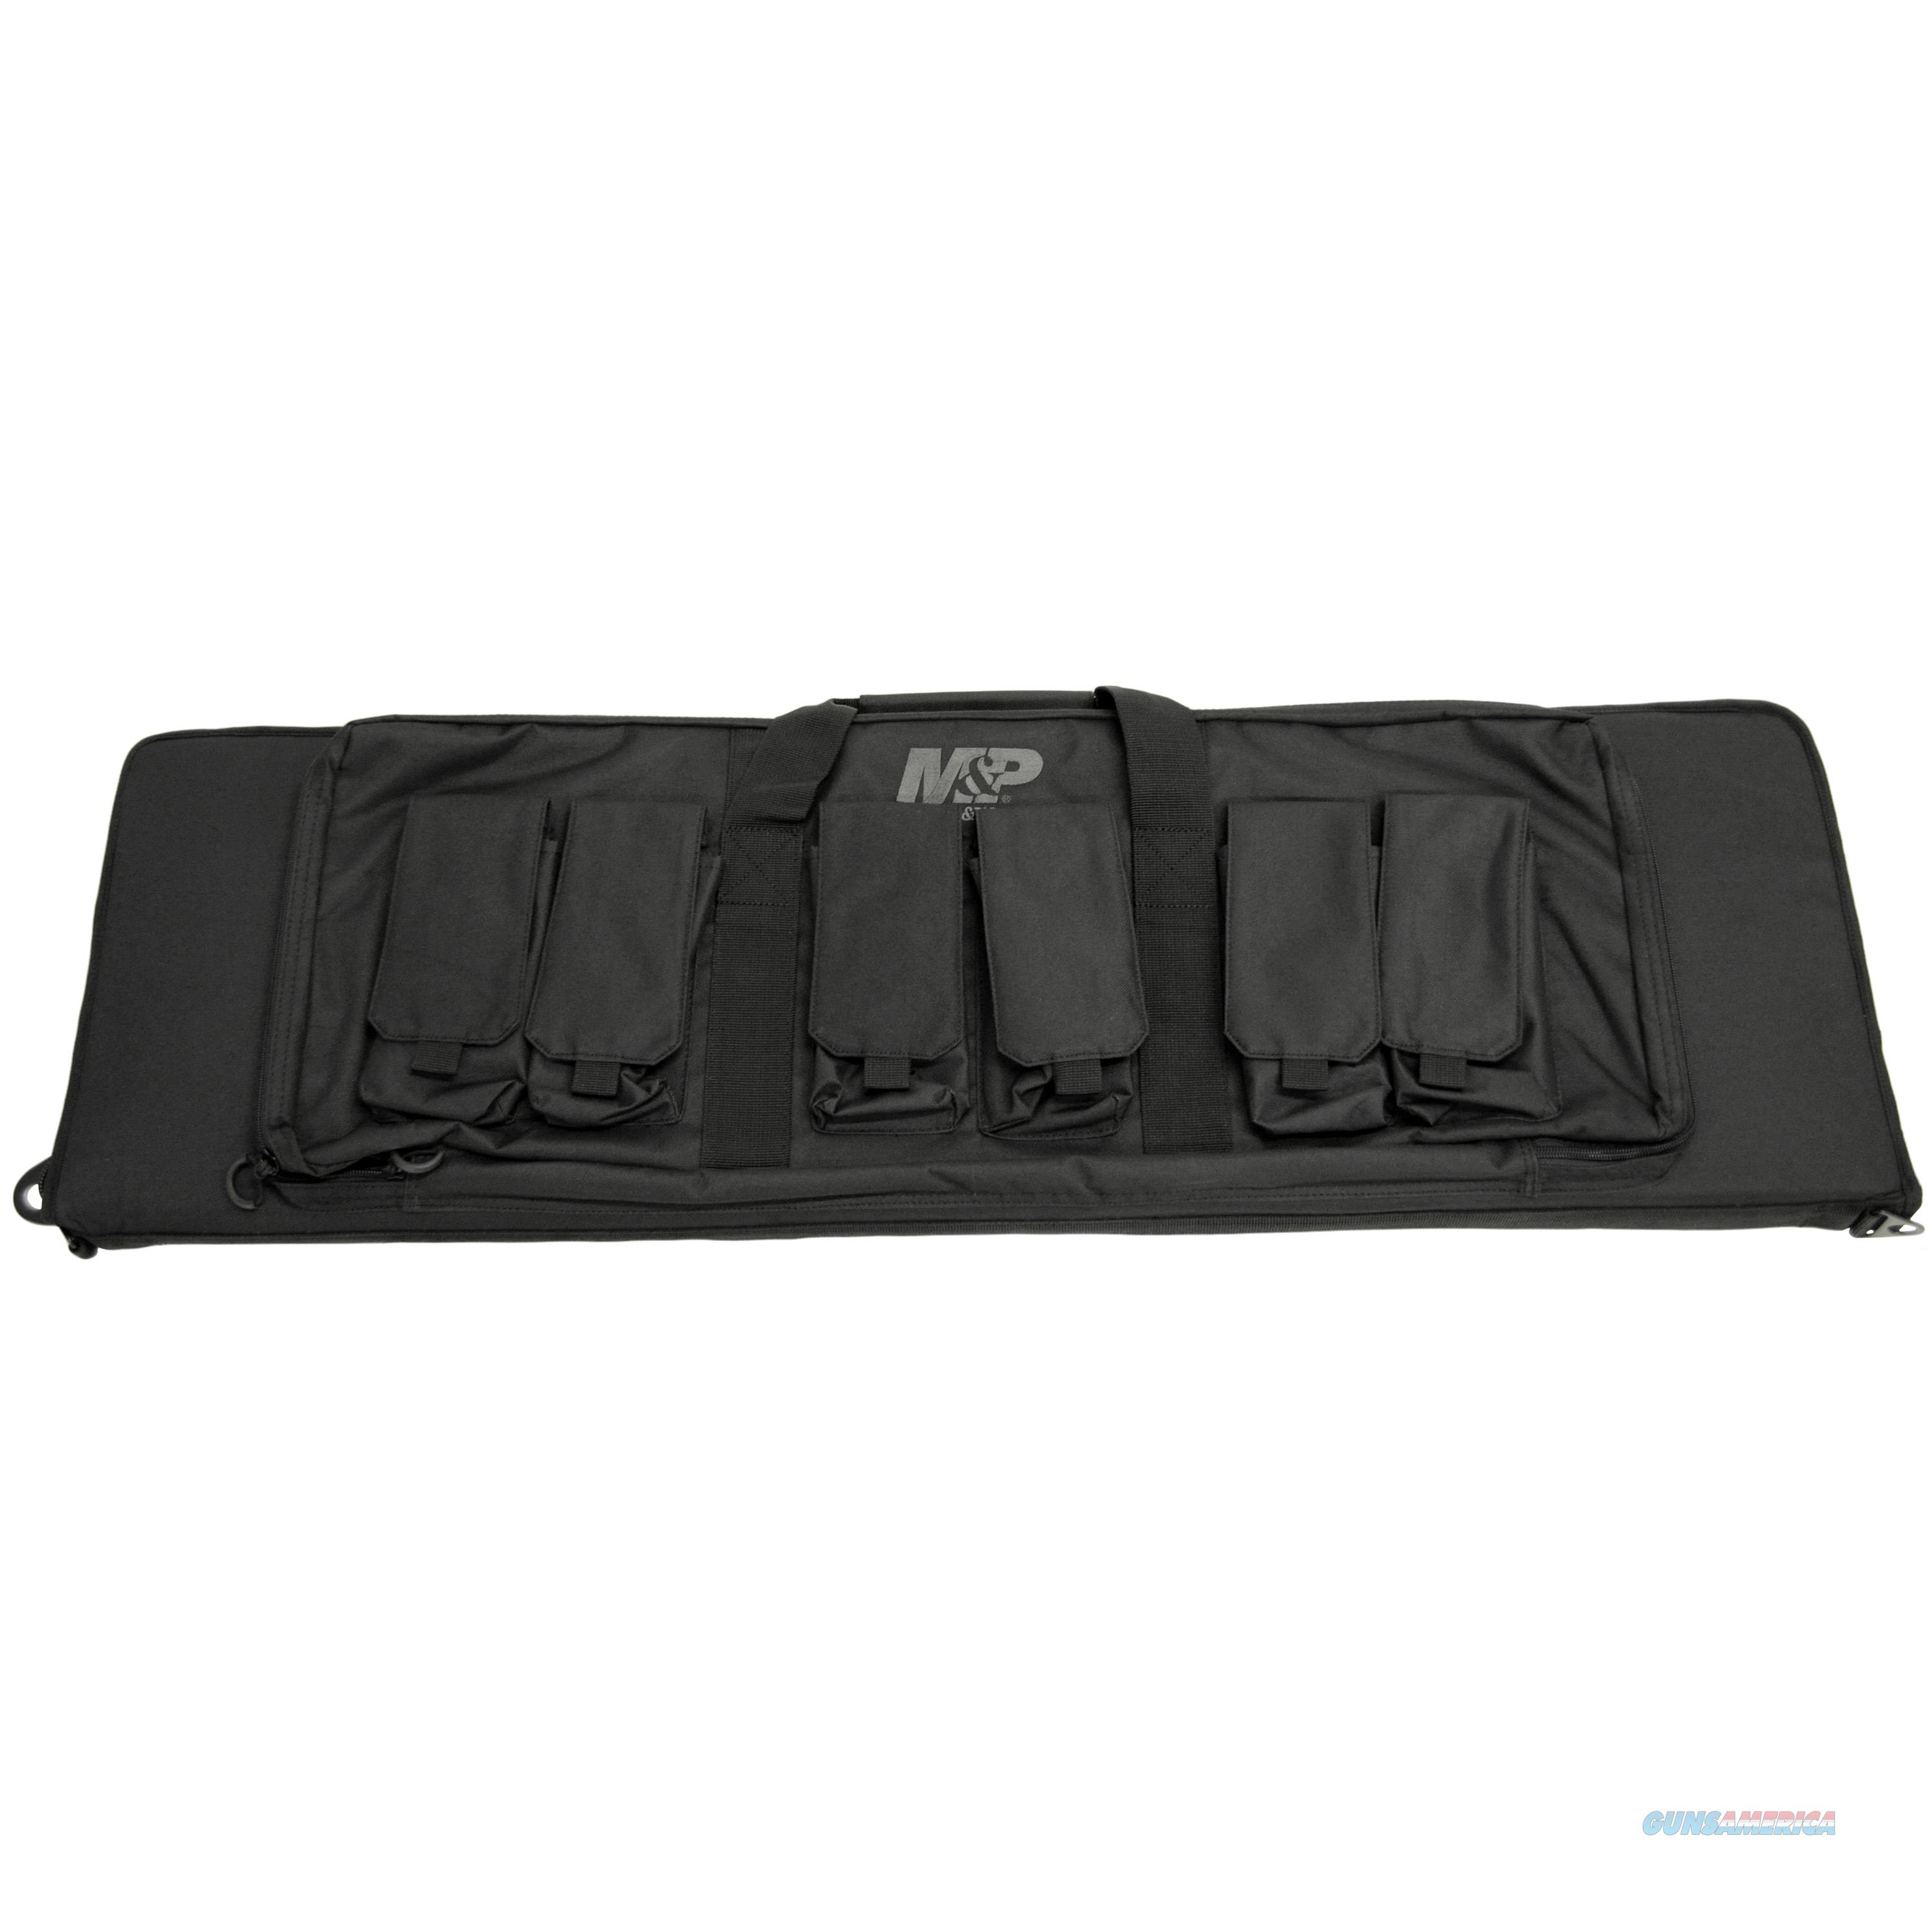 Caldwell Shooting Supplies Pro Tactical Gun Case 110025  Non-Guns > Gun Cases